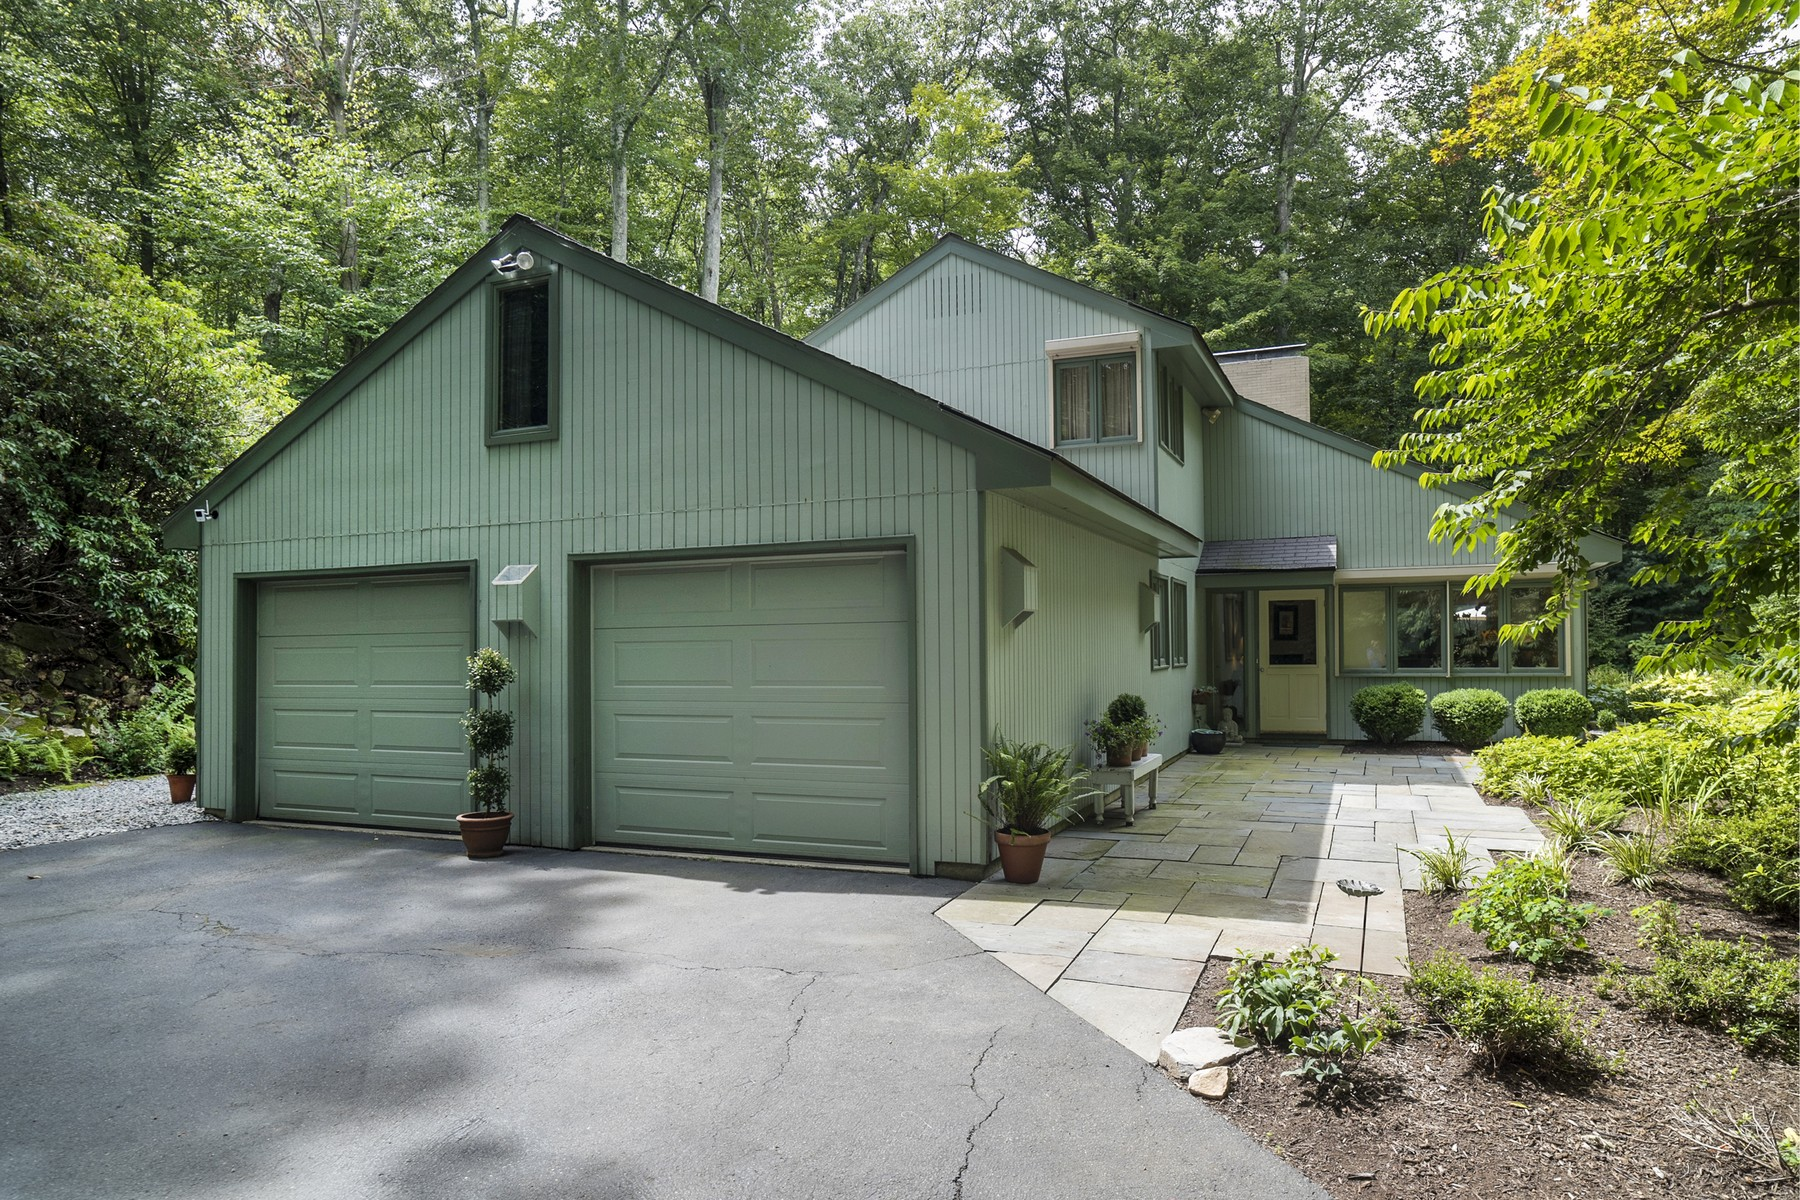 Single Family Home for Sale at Sited on Dramatic 3.92 Acres 70 Book Hill Rd Deep River, Connecticut 06417 United States